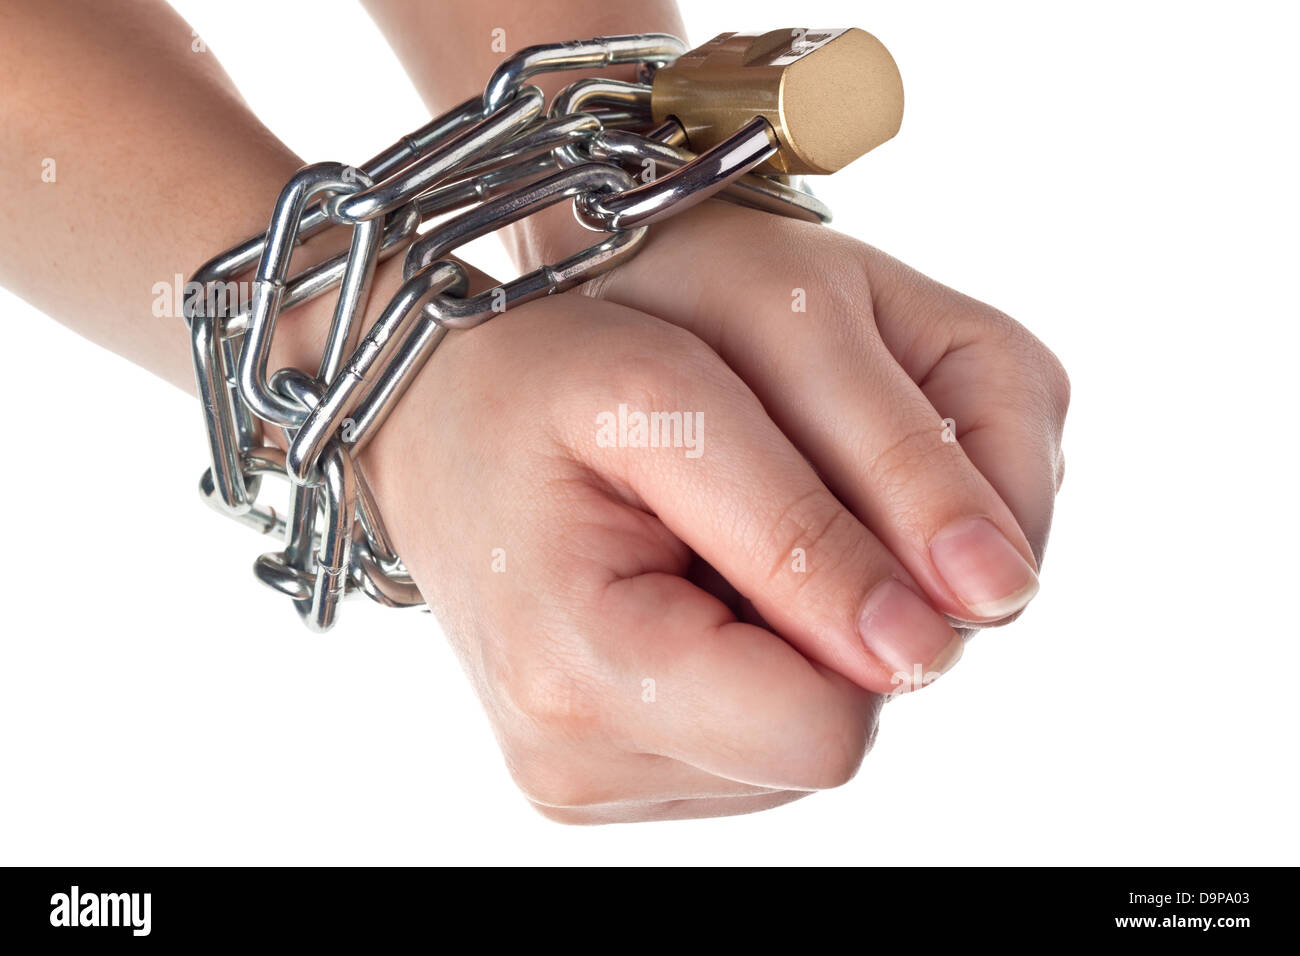 Two hands securely tied by metal chain isolated on white background Stock Photo